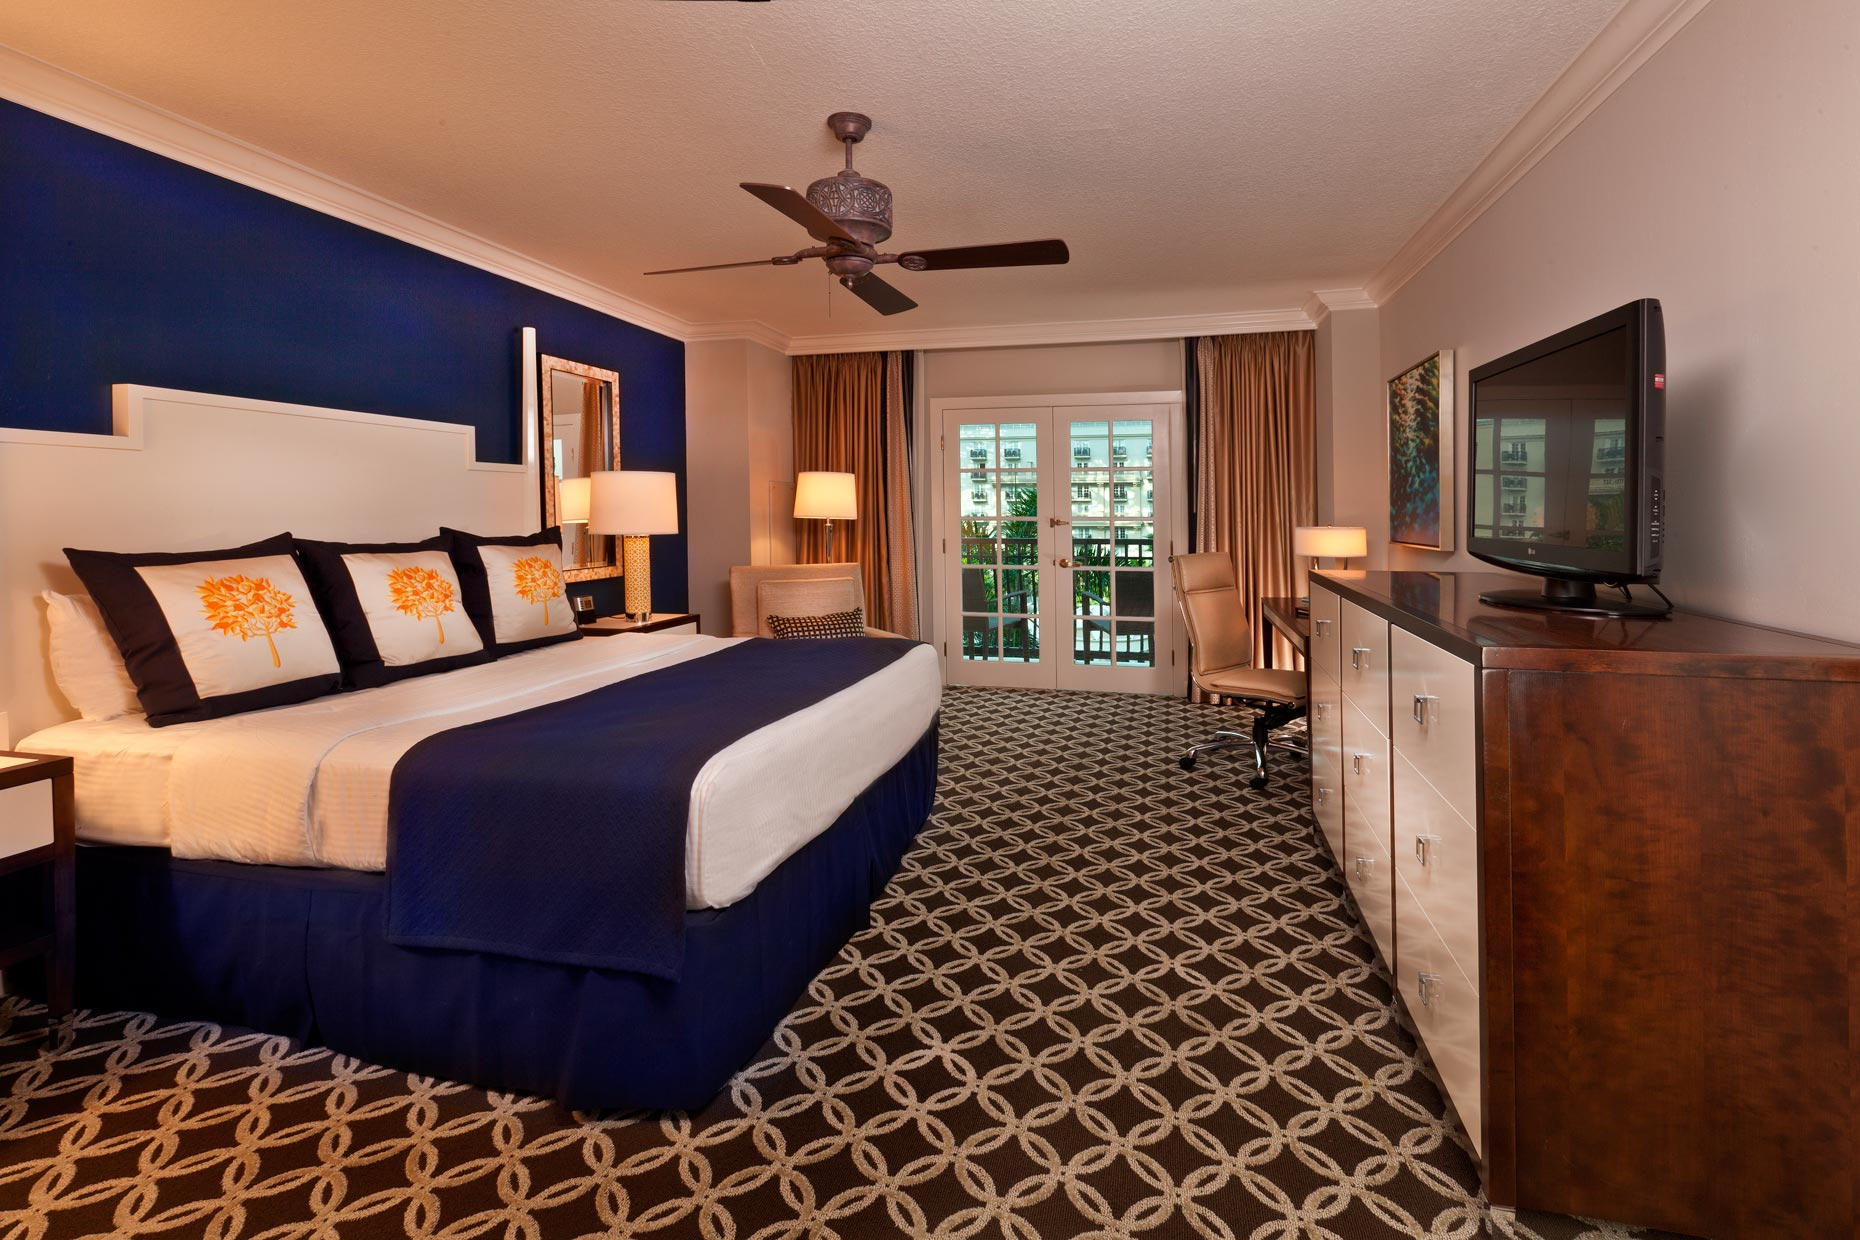 Hotel & Resort Photography | Gaylord Palms Hotel Suite